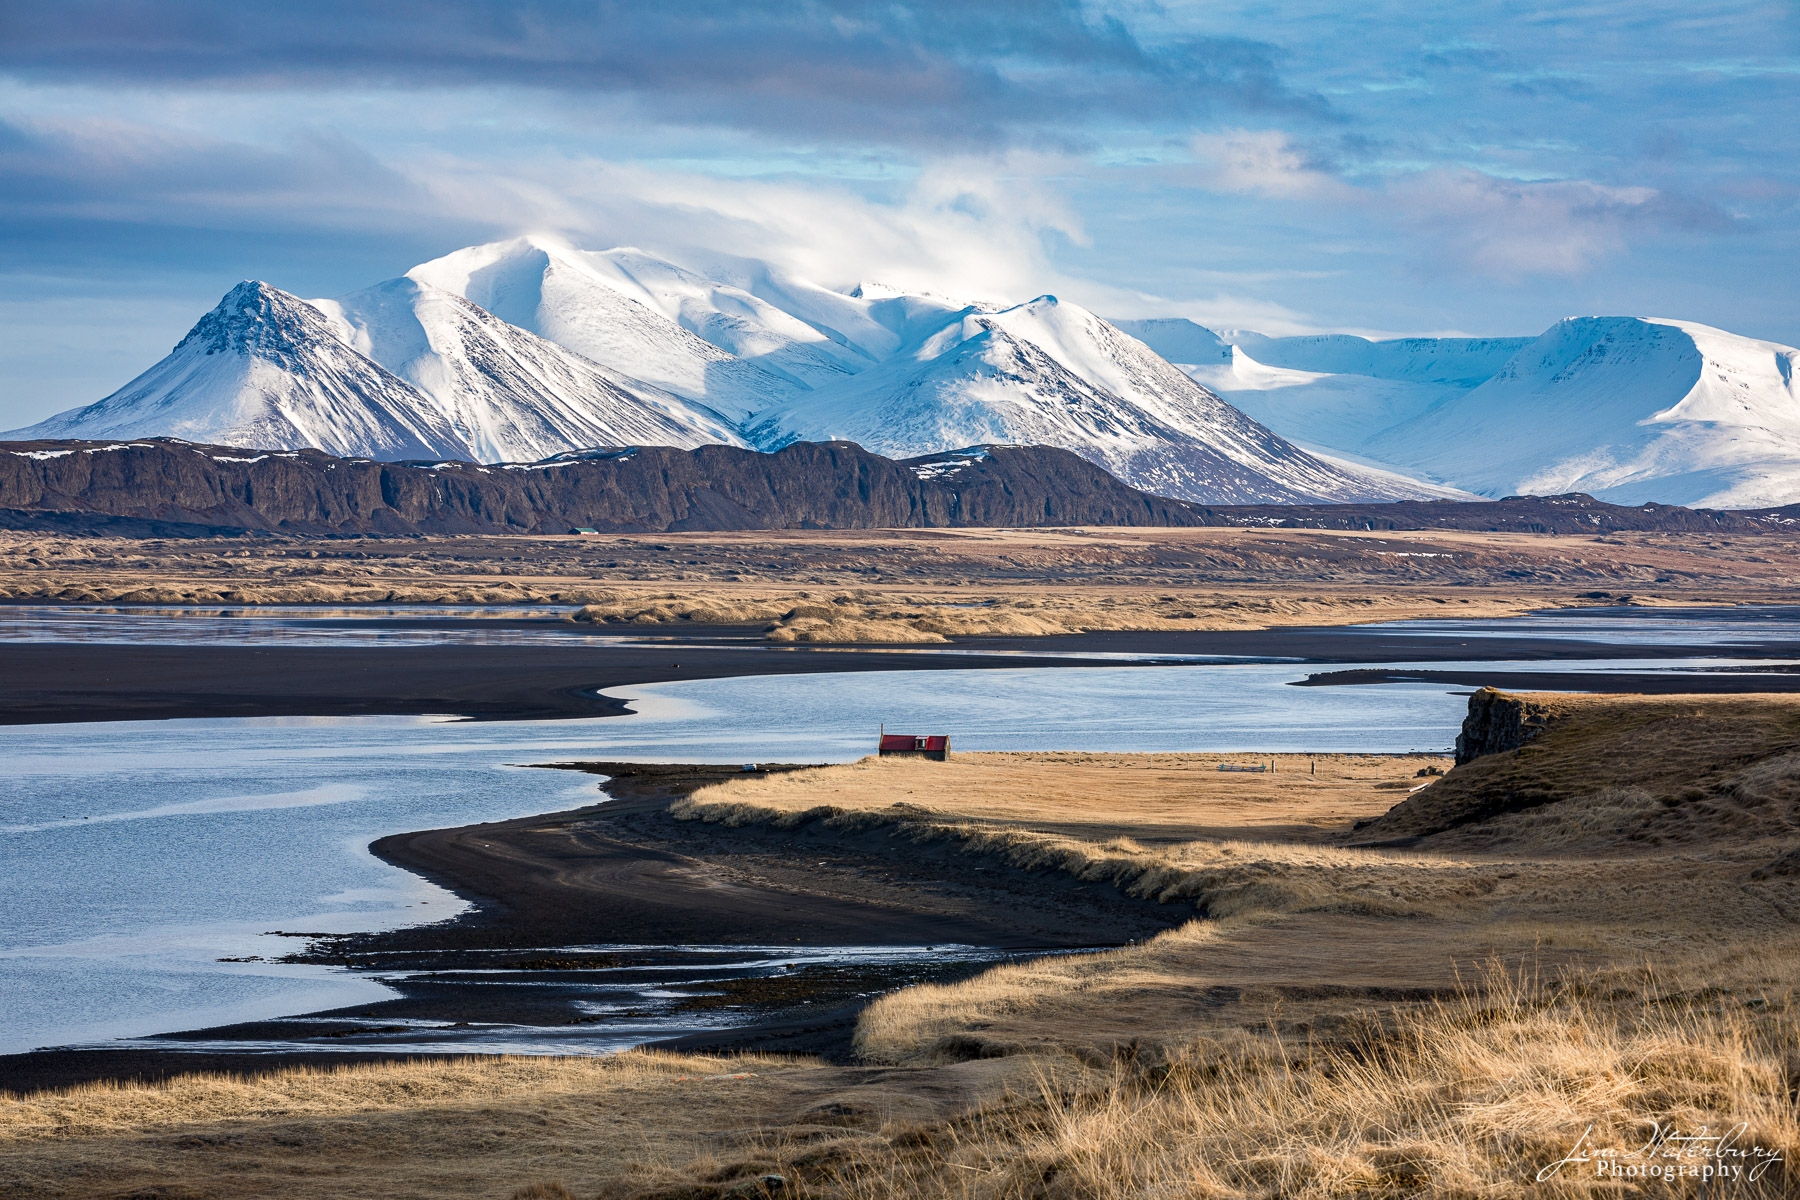 mountains, snow, beaches, black sand, water, Iceland, photo